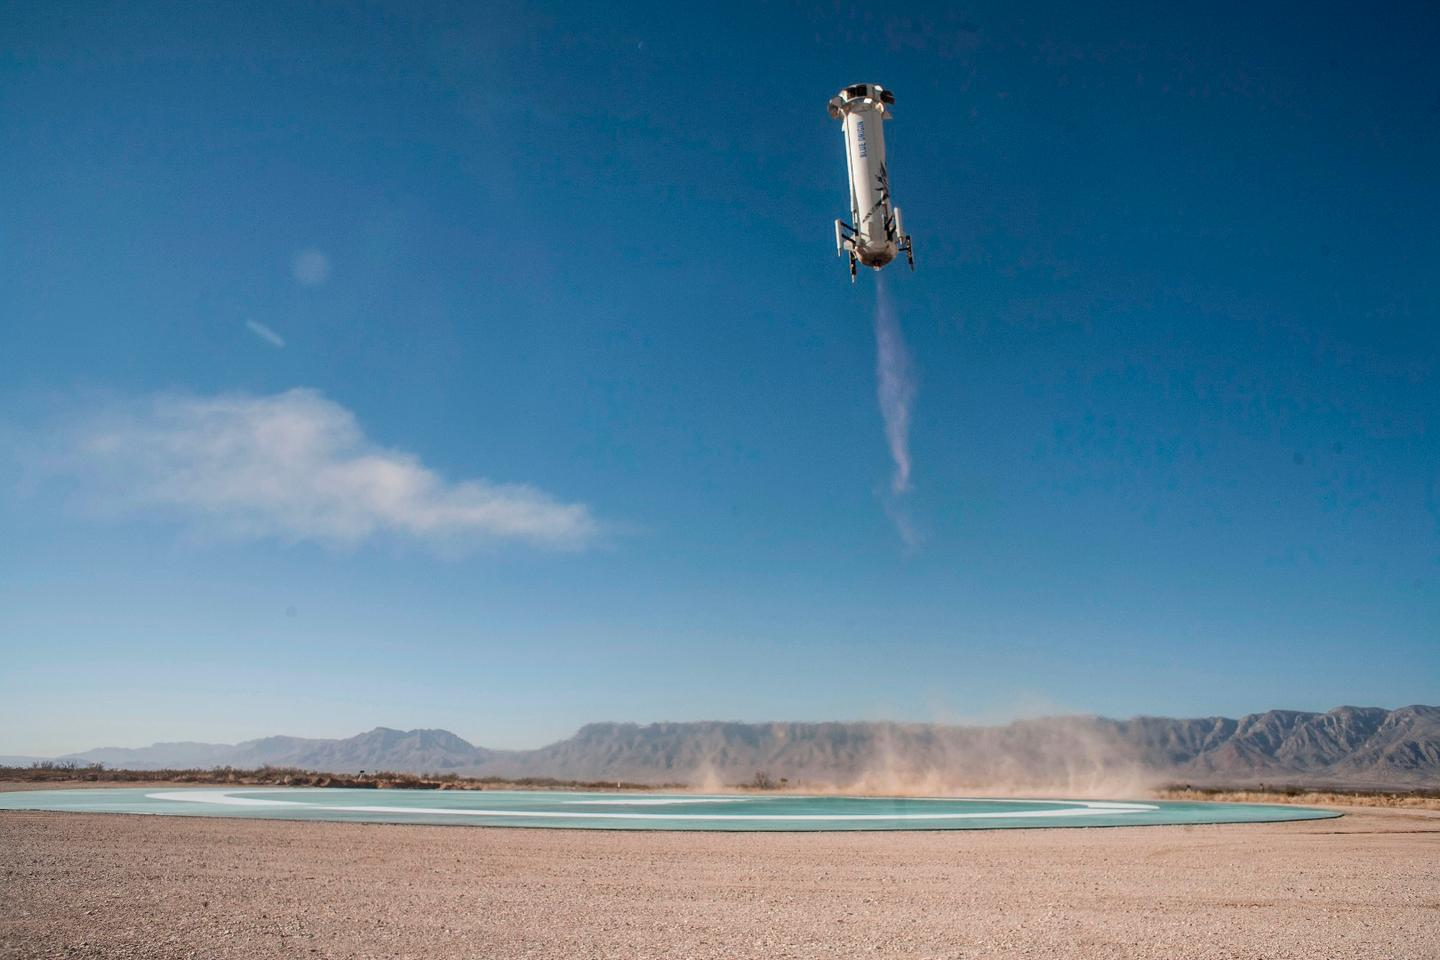 New Shepard Booster landing on the pad in West Texas after a successful Mission 7